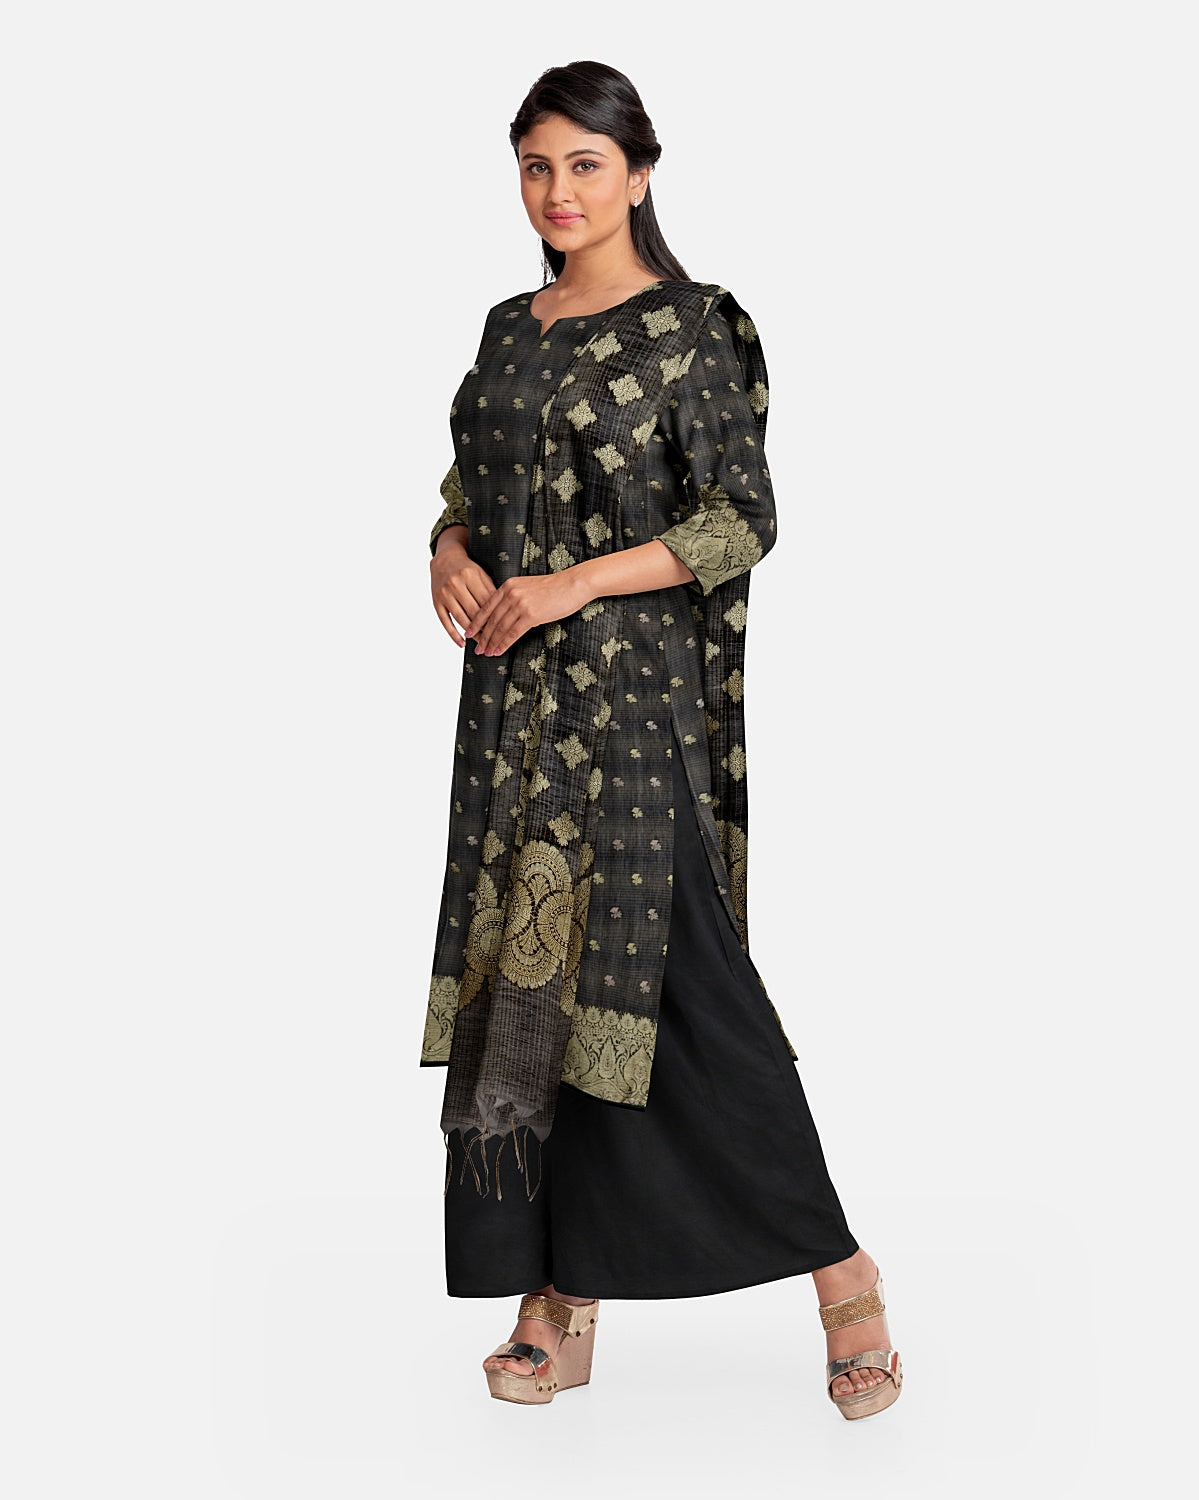 Charcoal Black  & Gold Cotton Suit Fabric Set